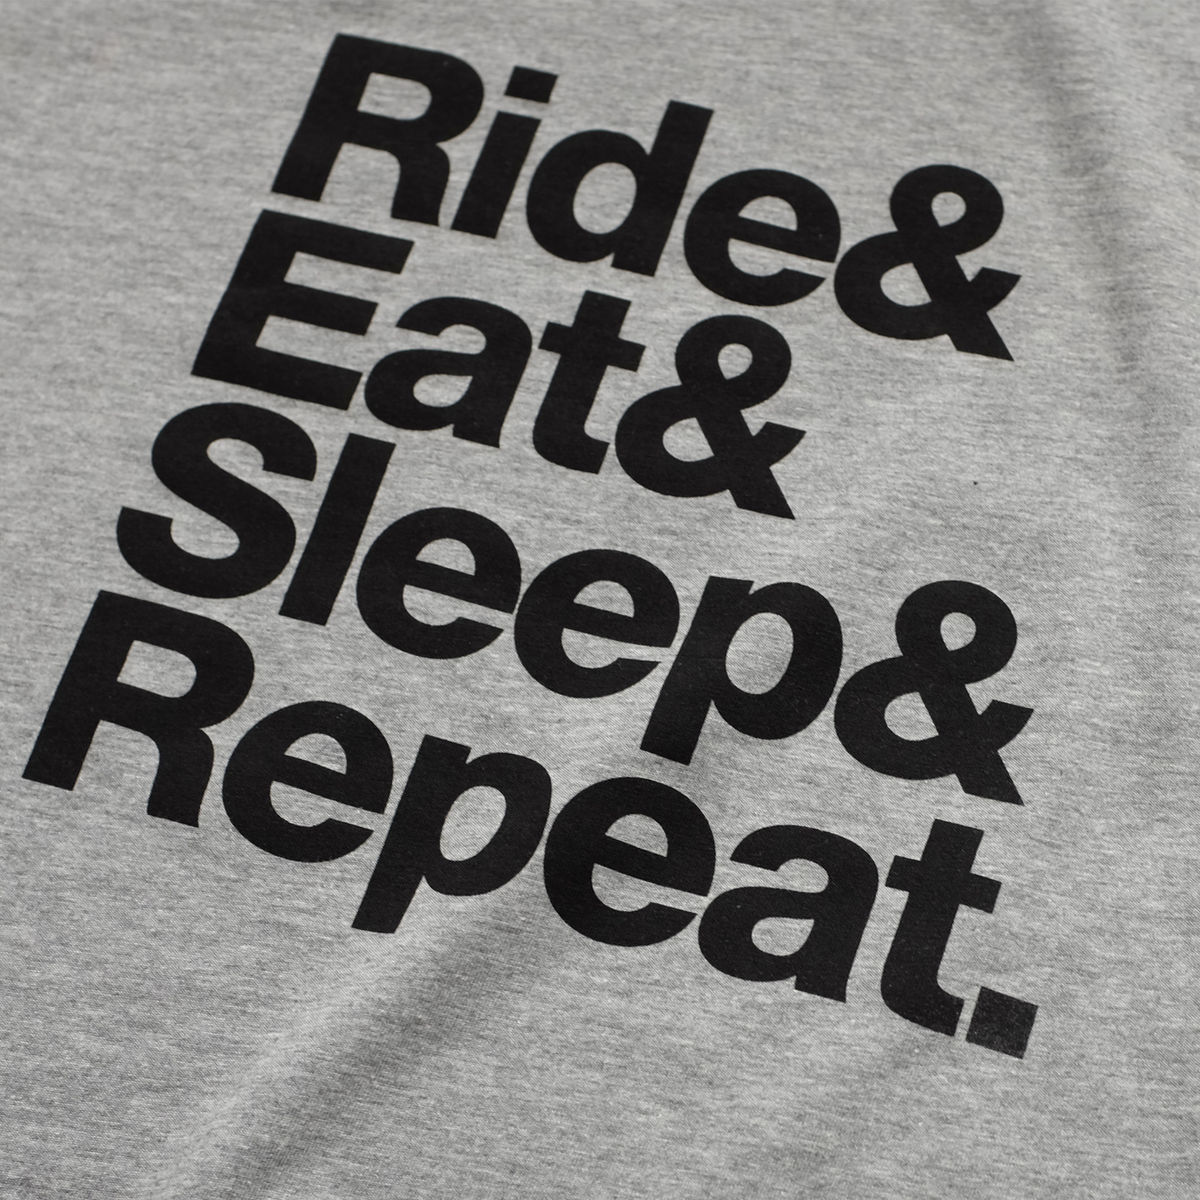 AOP - RIDE & EAT & SLEEP & REPEAT Men's T-shirt - product images  of